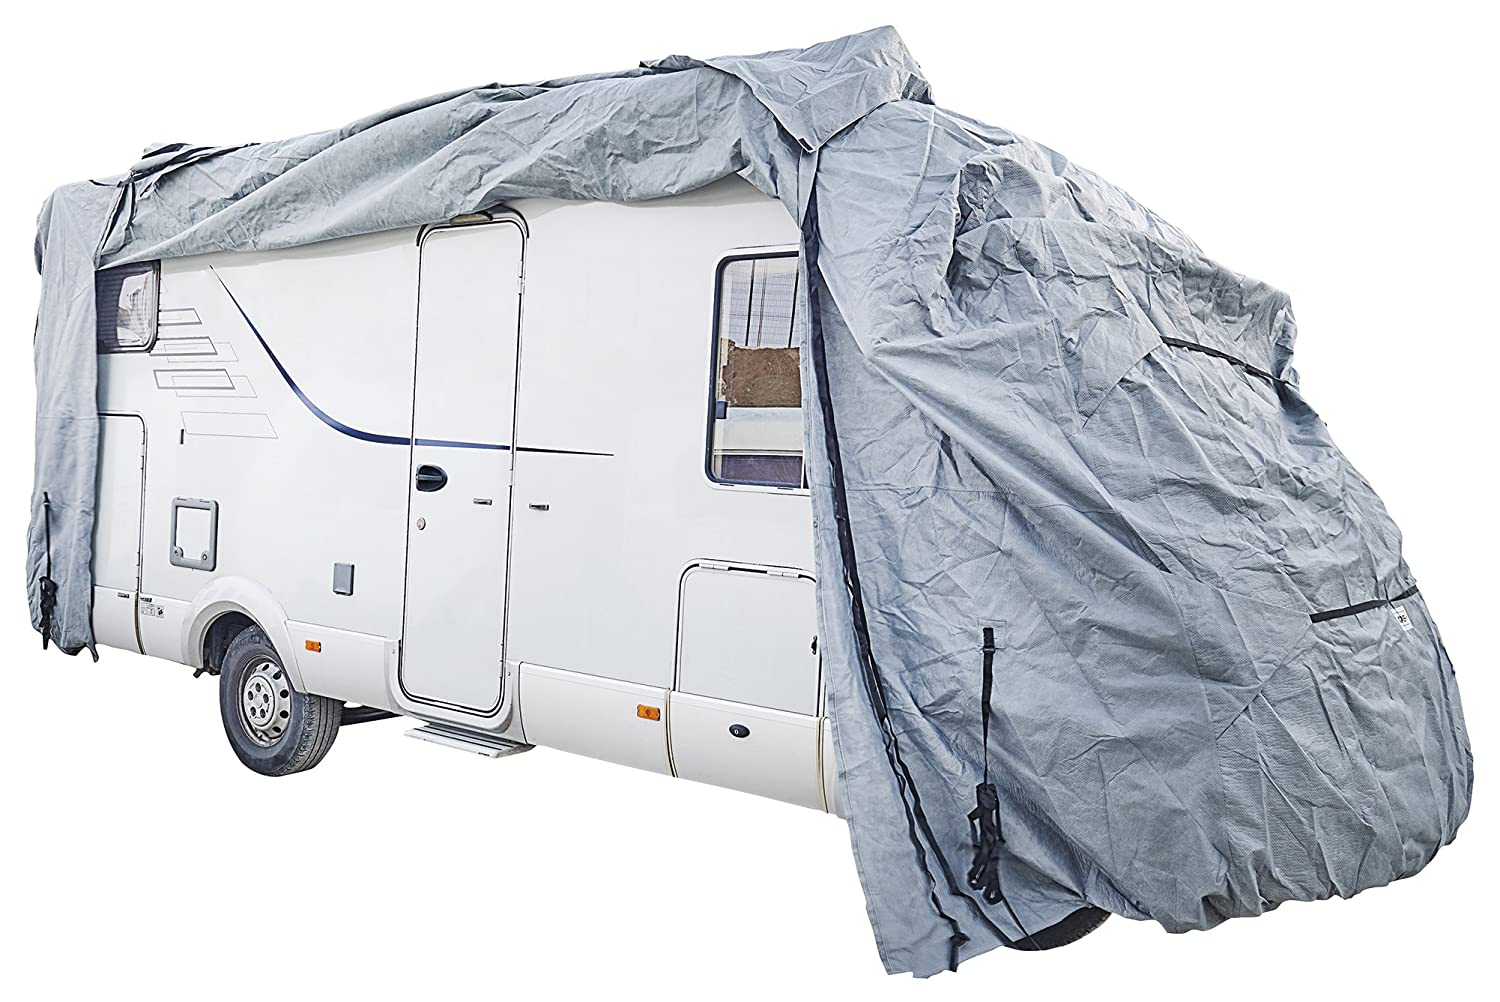 SUMEX Motorhome Cover Fits Breathable Water Resistant 6.5-7 m COVDH70